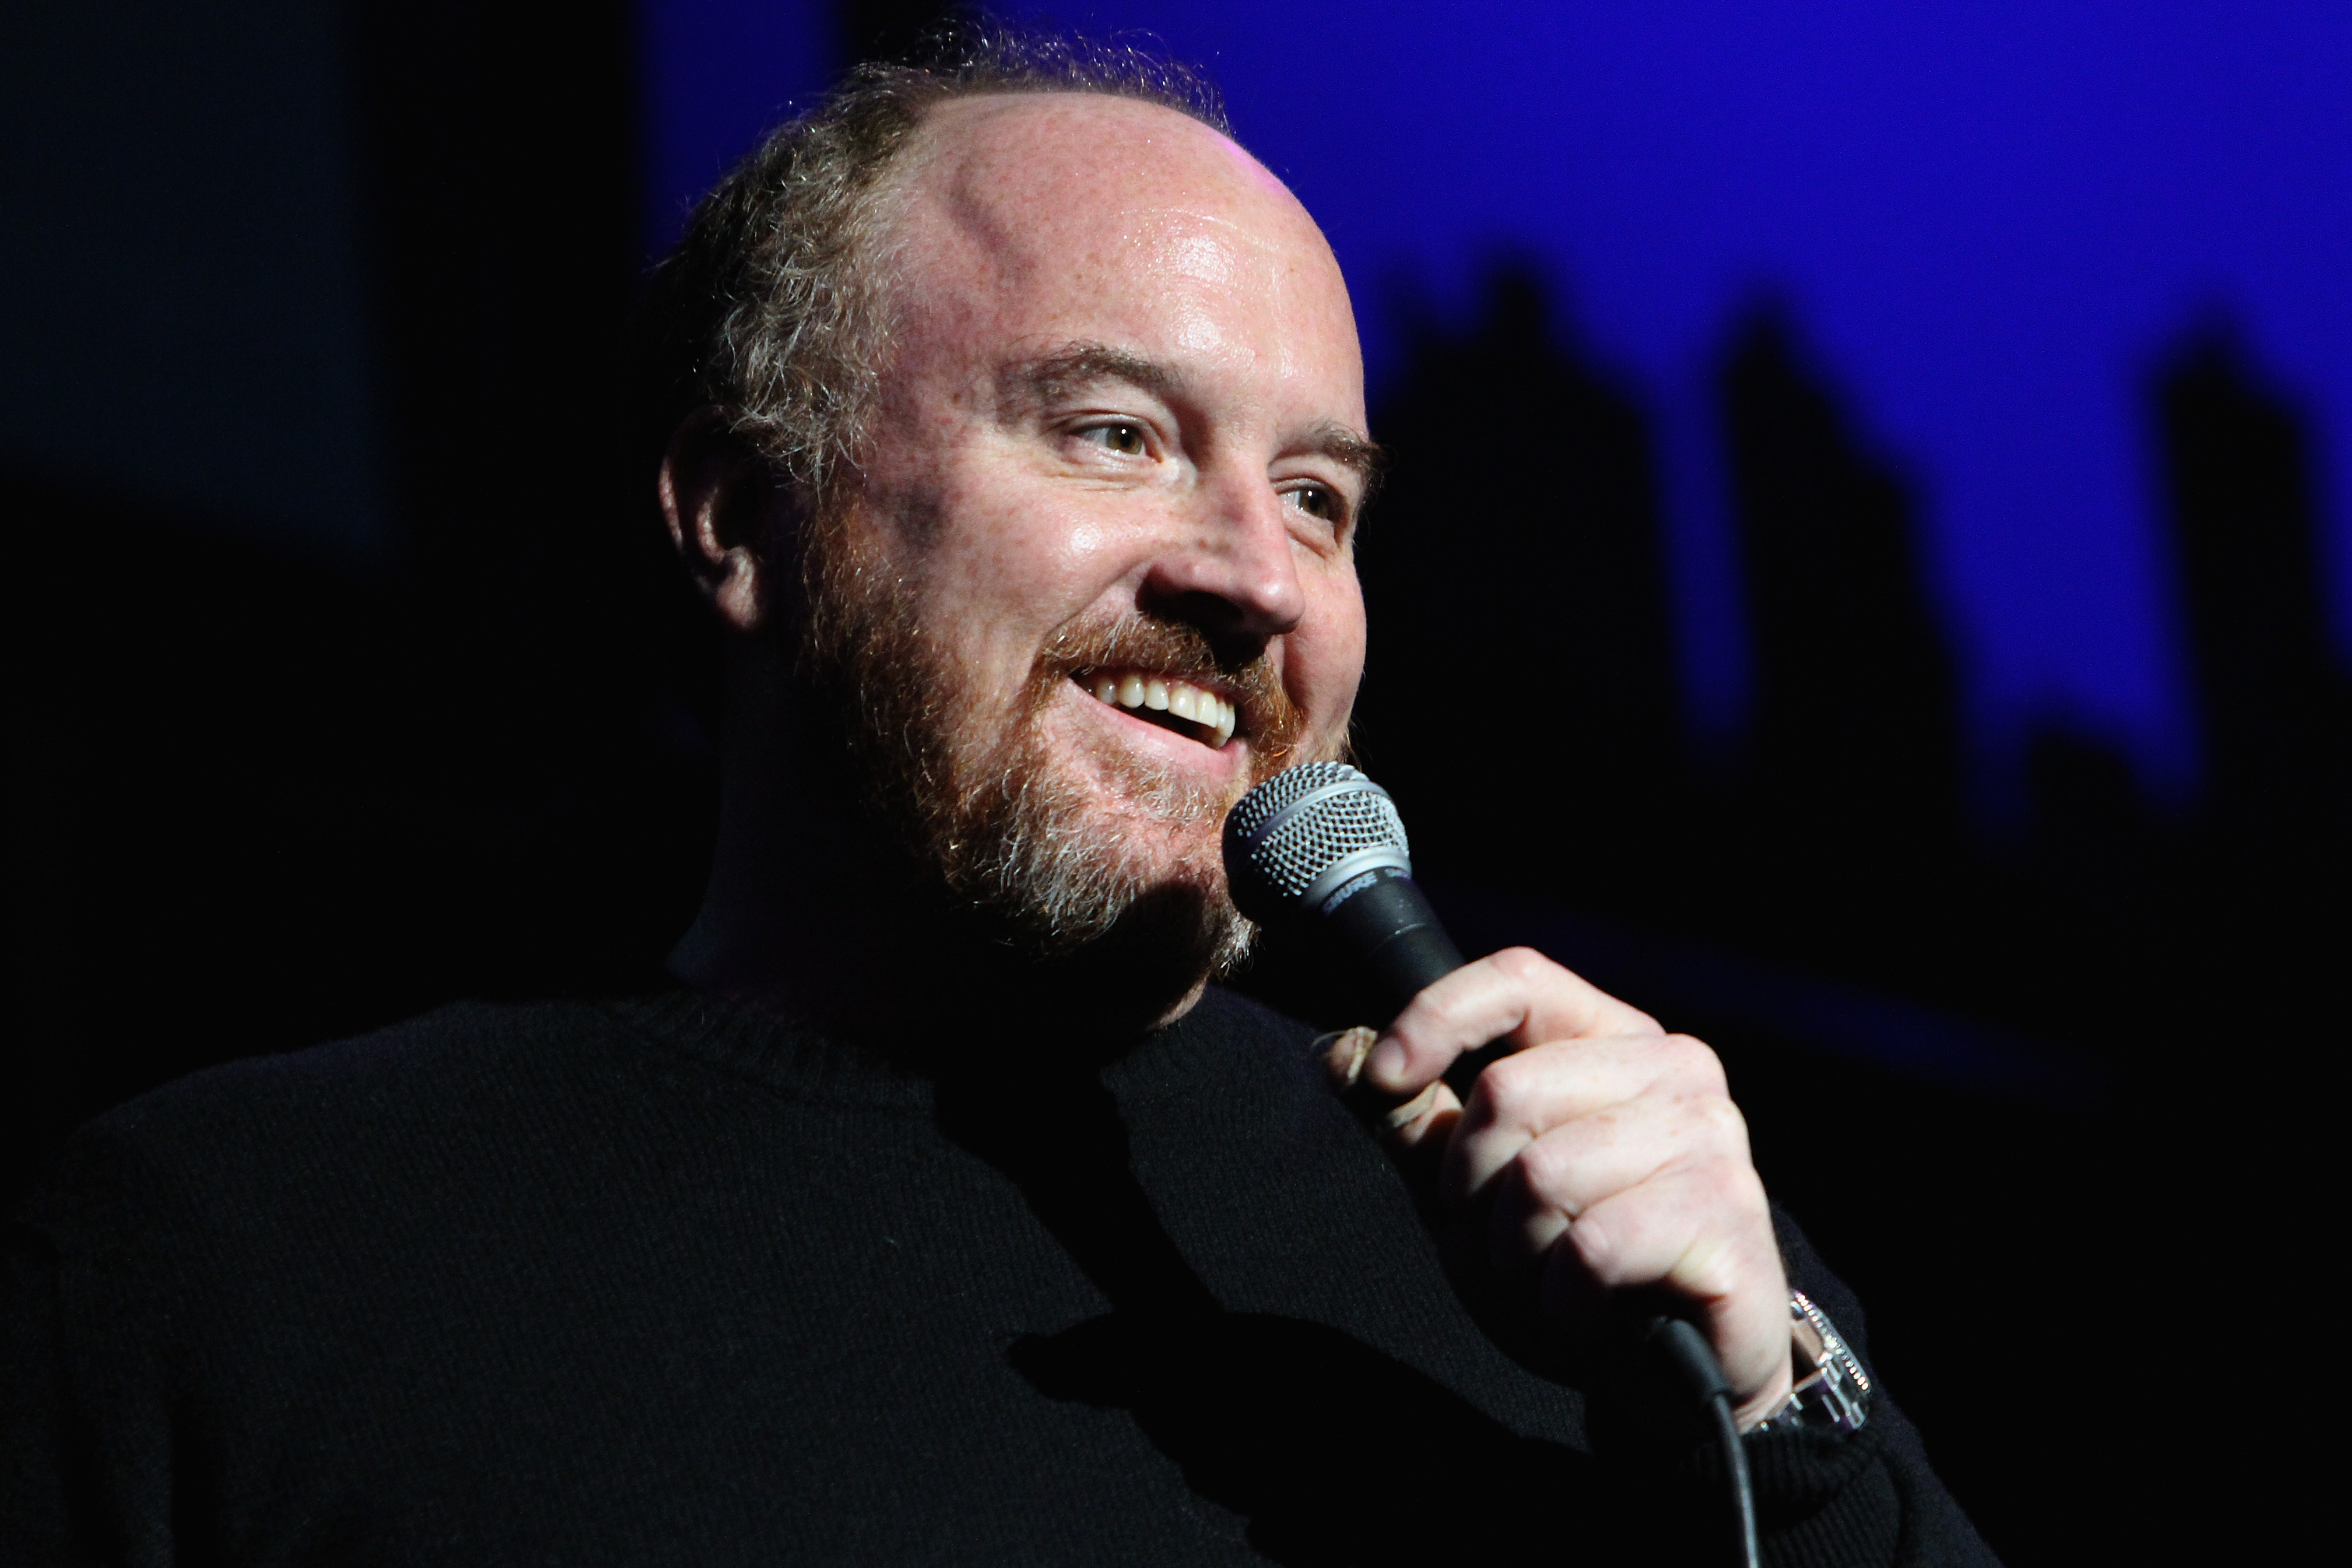 The complete statement from Louis CK appears below I want to address the stories told to The New York Times by five women named Abby Rebecca Dana